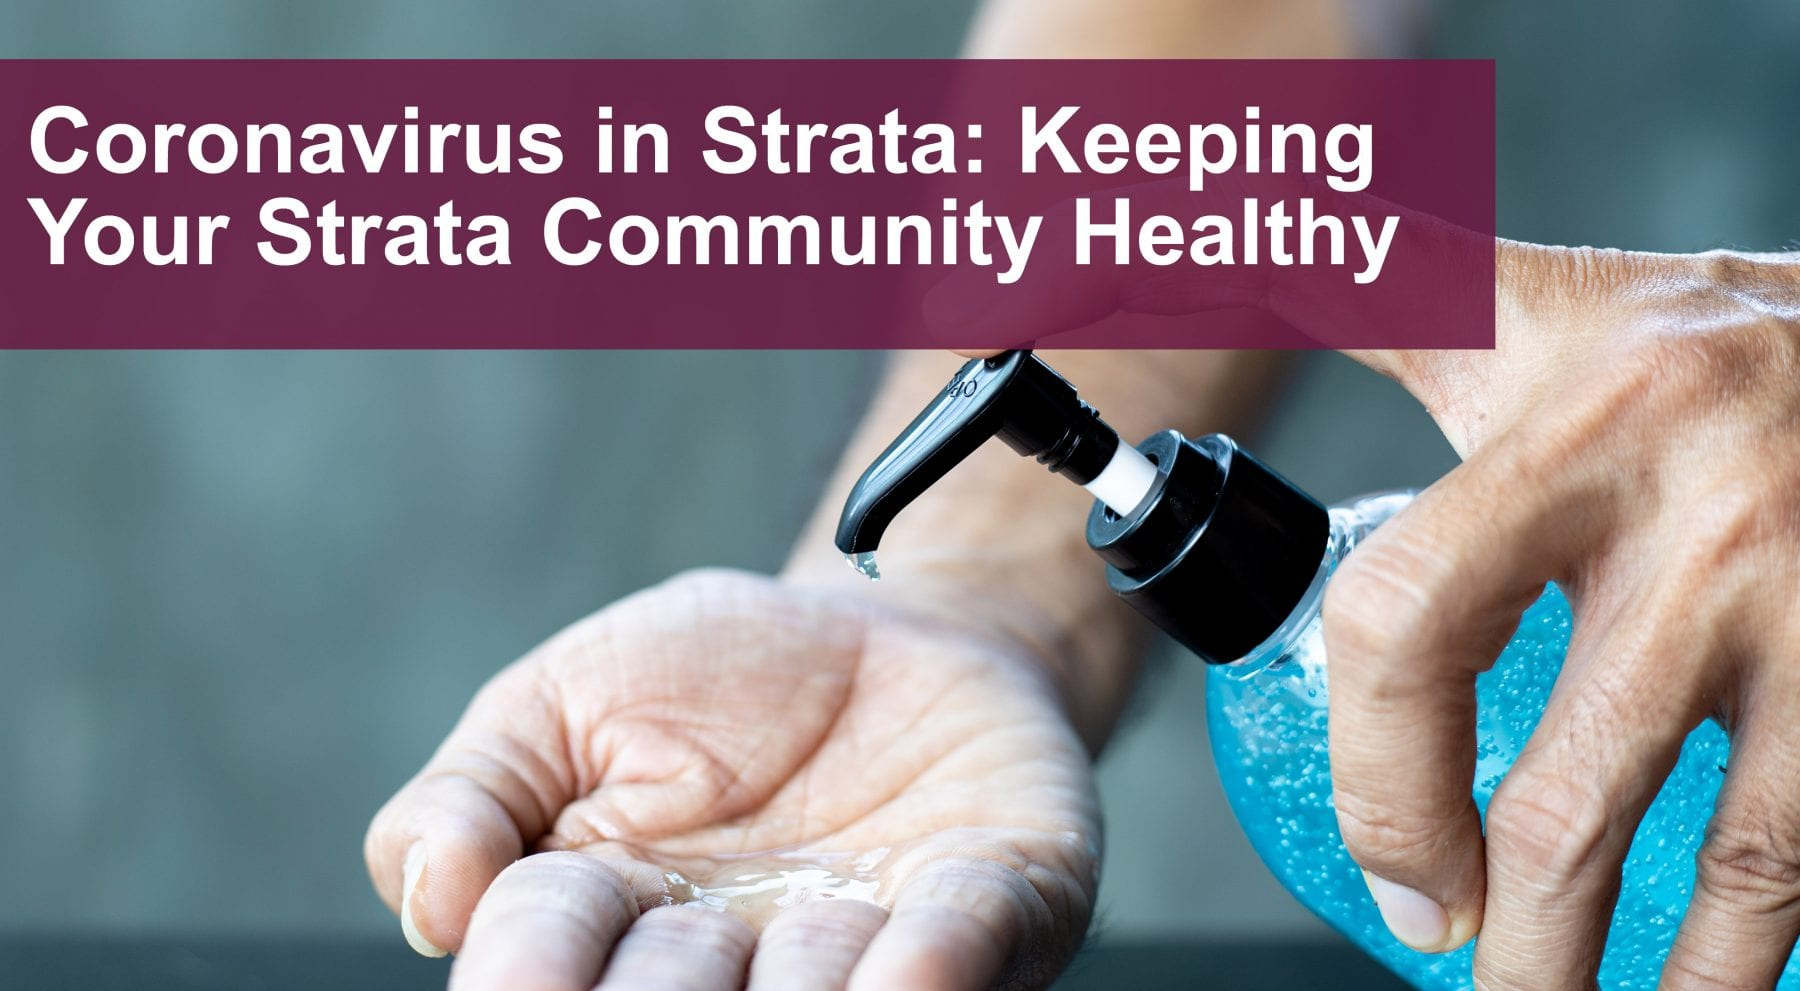 Coronavirus in Strata: Keeping your Strata Community Healthy